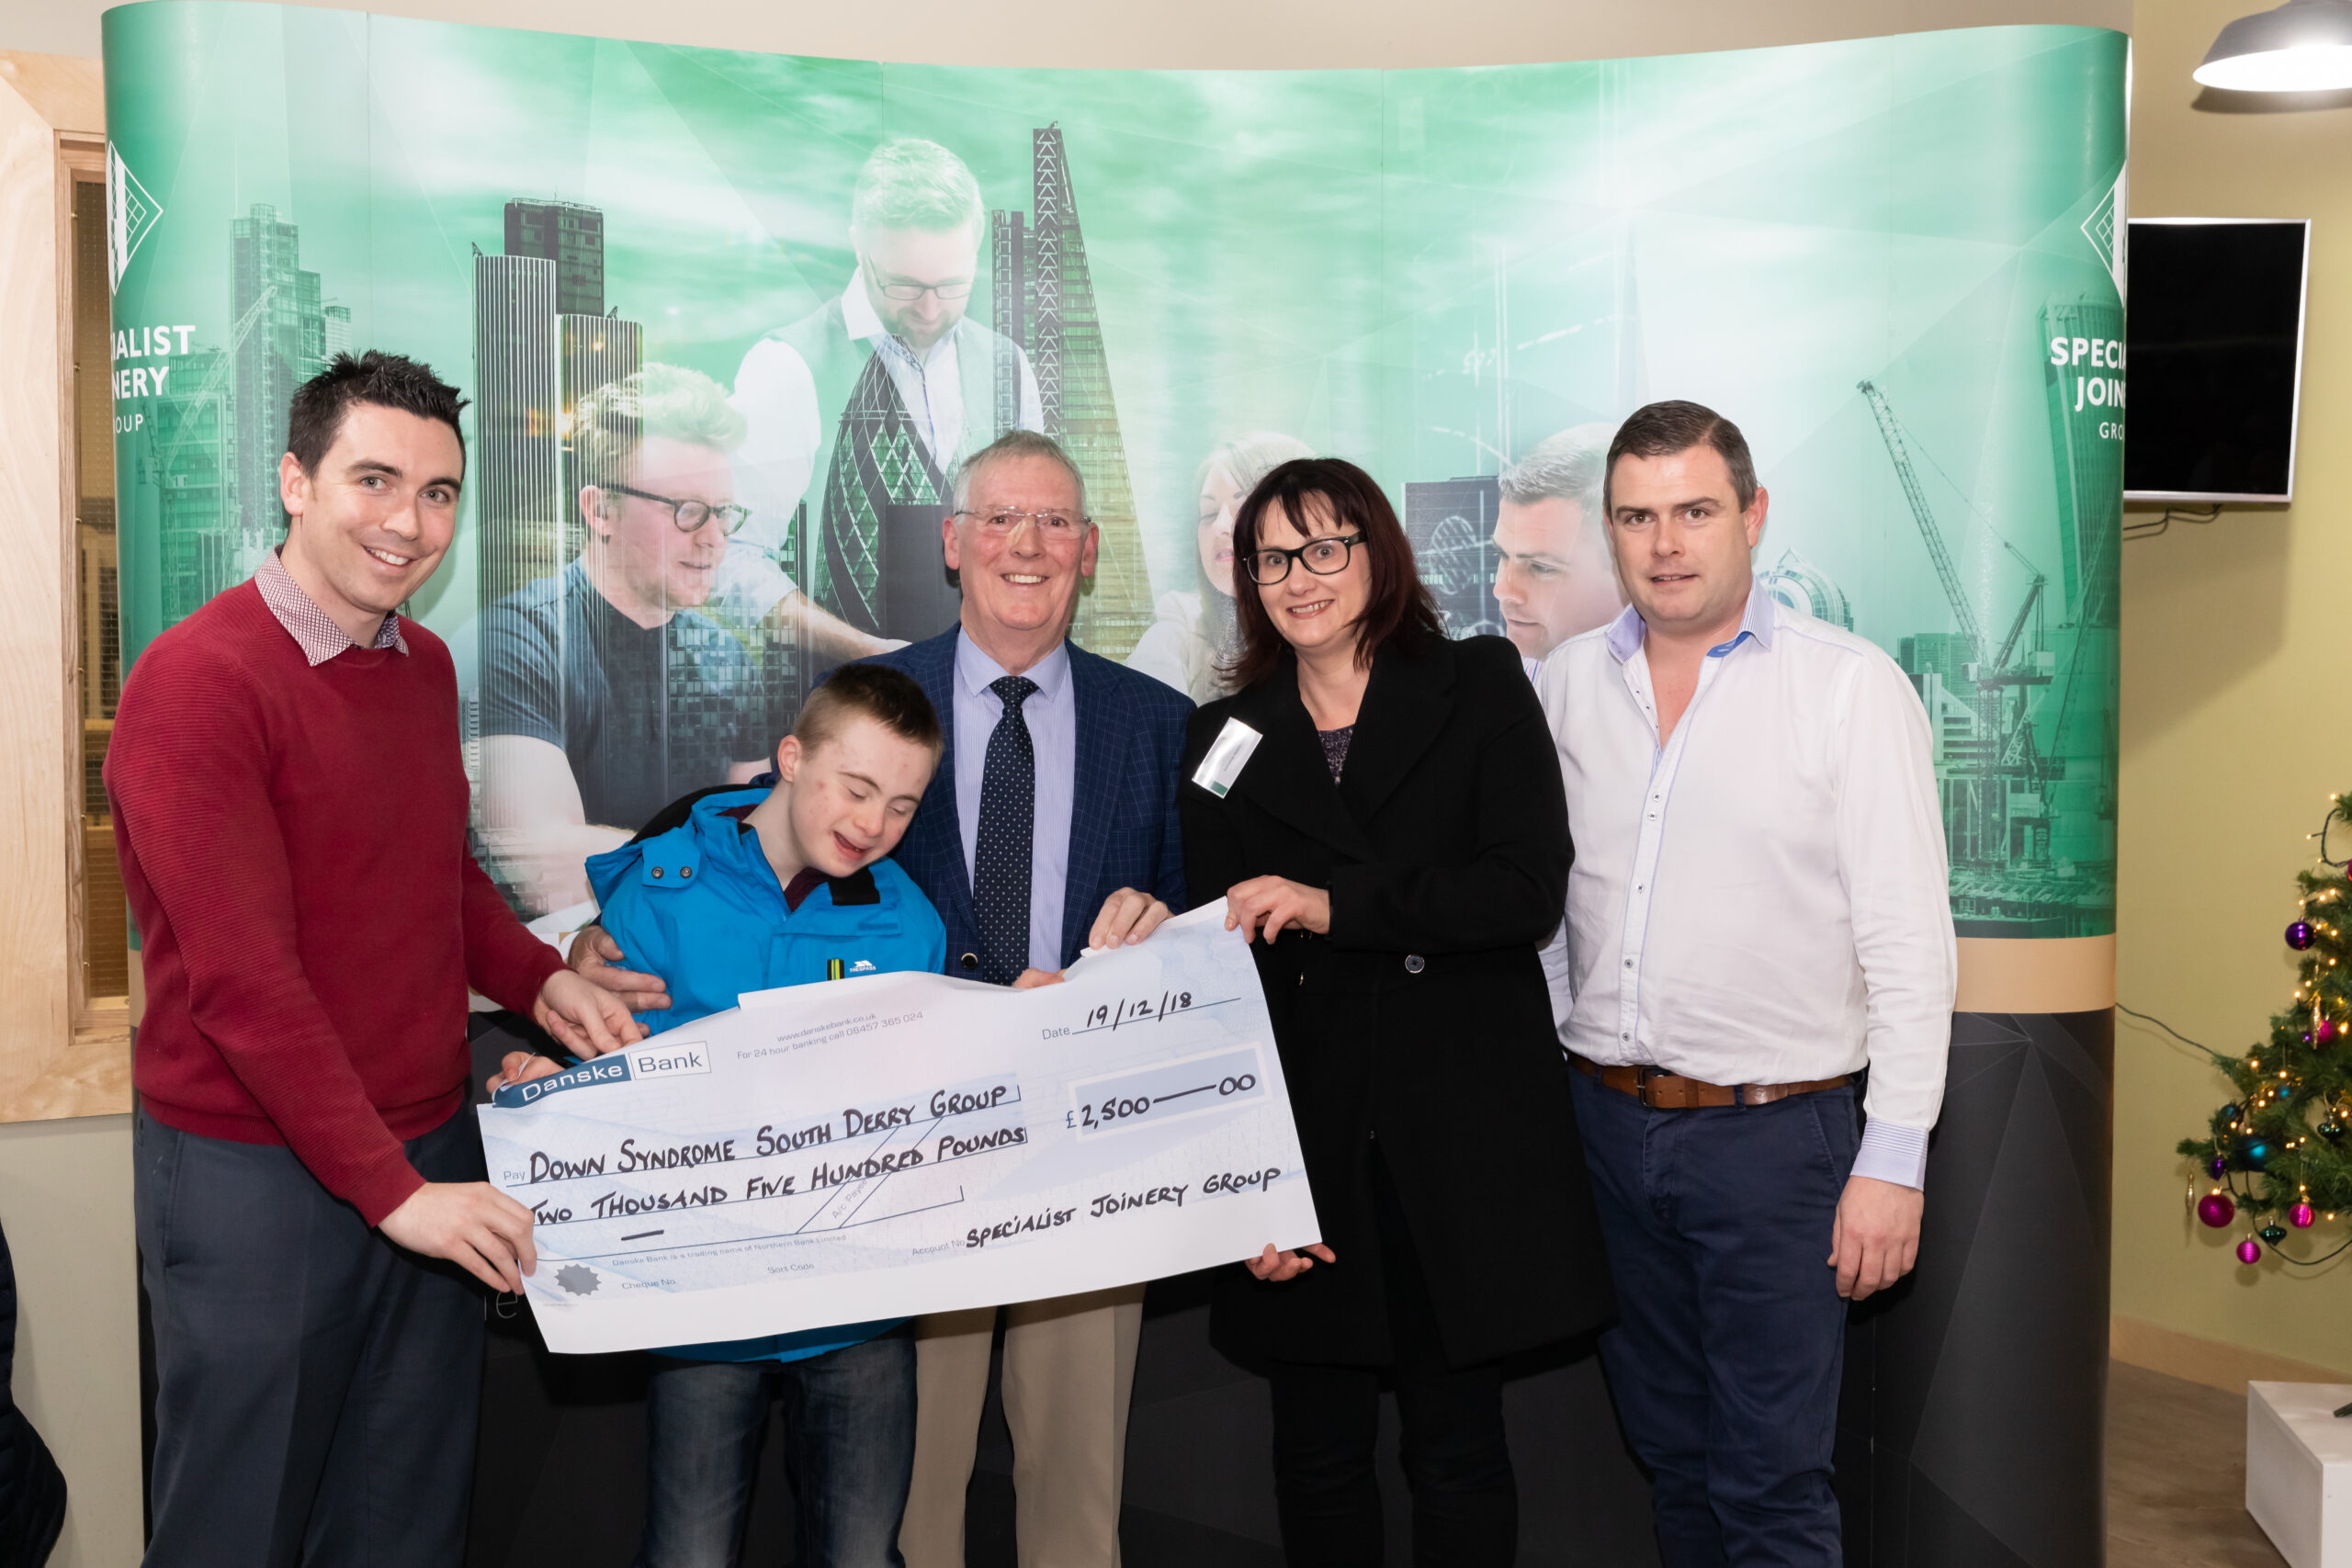 Adrienne and Mark Hutchinson from Down Syndrome South Derry Group pictured with Dermot, John Bosco and Ciaran O'Hagan